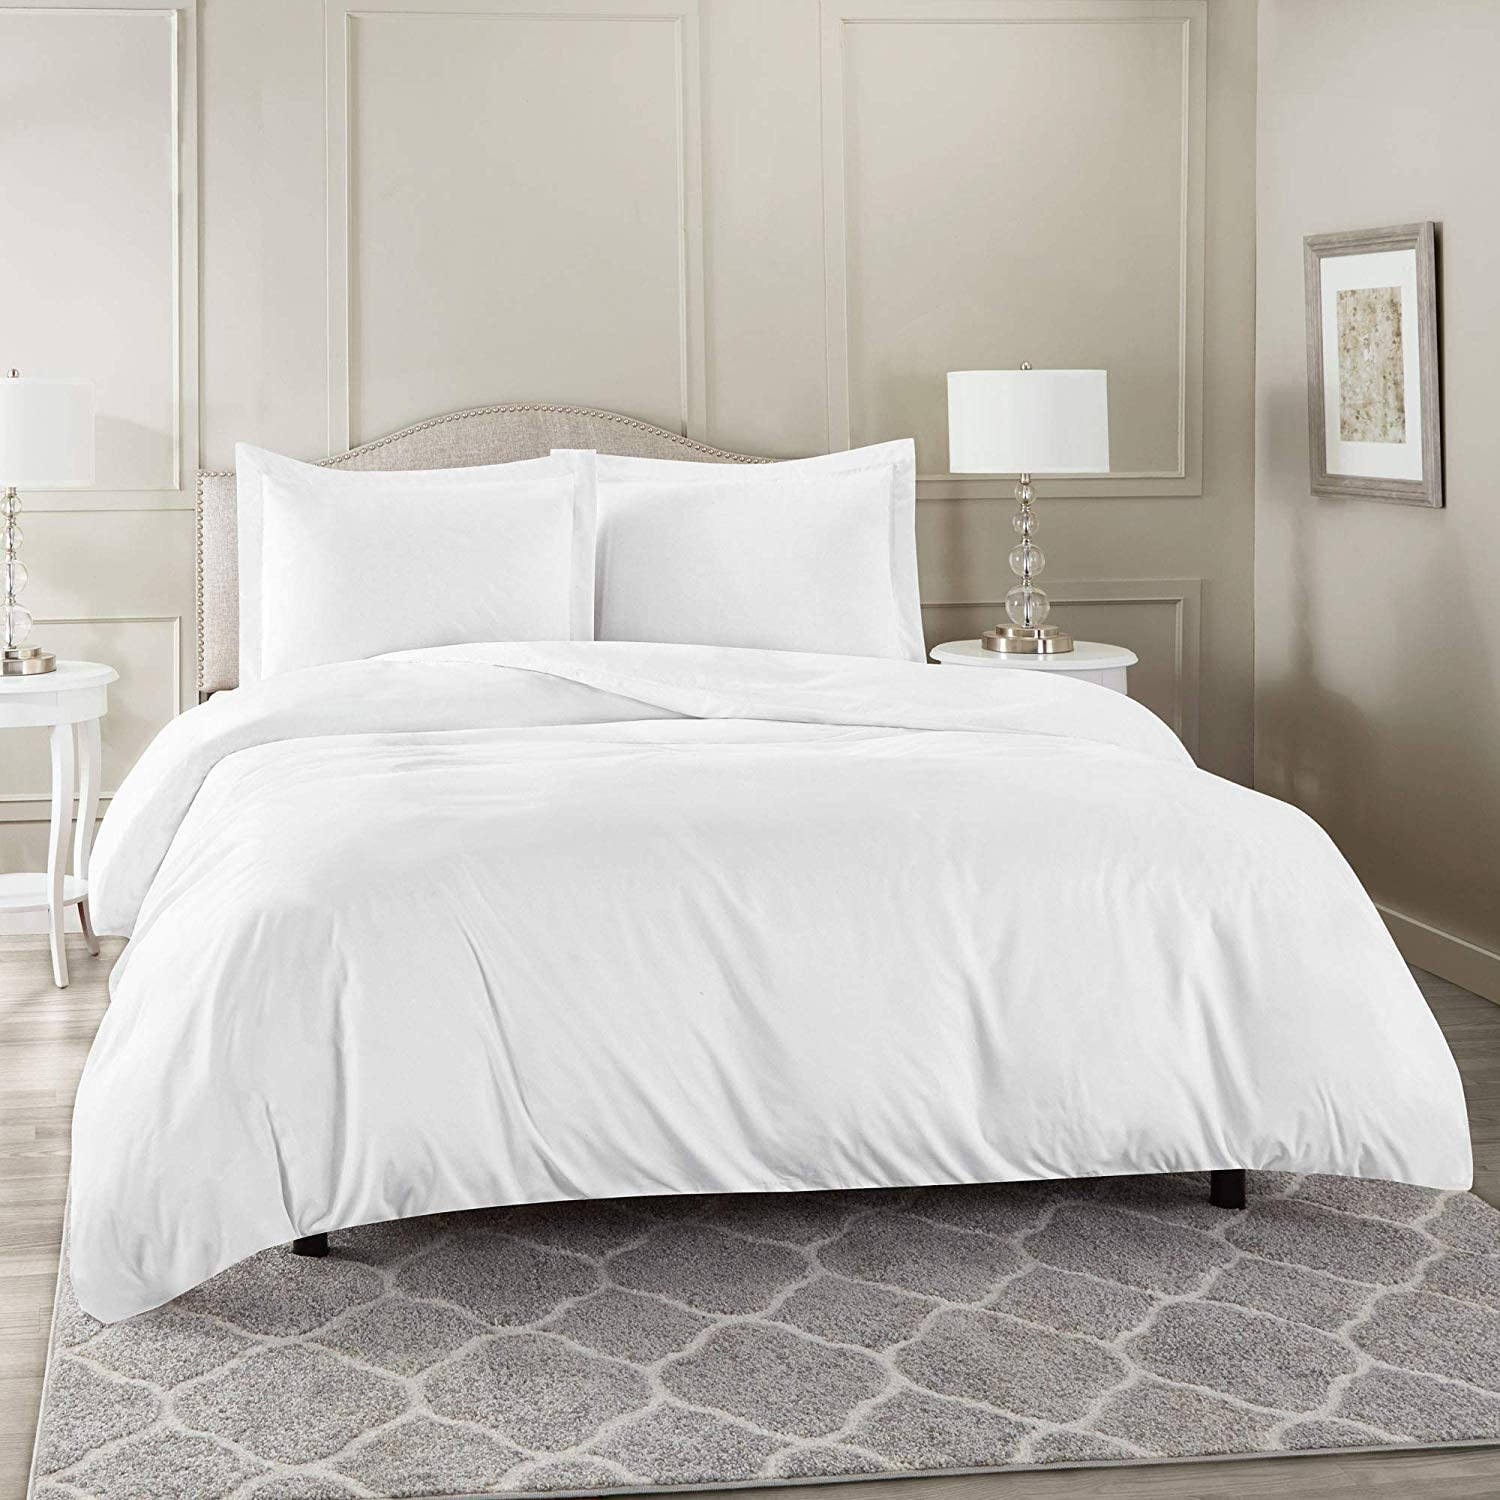 600 Thread Count Three (3) Piece Queen Size White Solid Duvet Cover Set, 100% Egyptian Cotton, Premium Hotel Quality